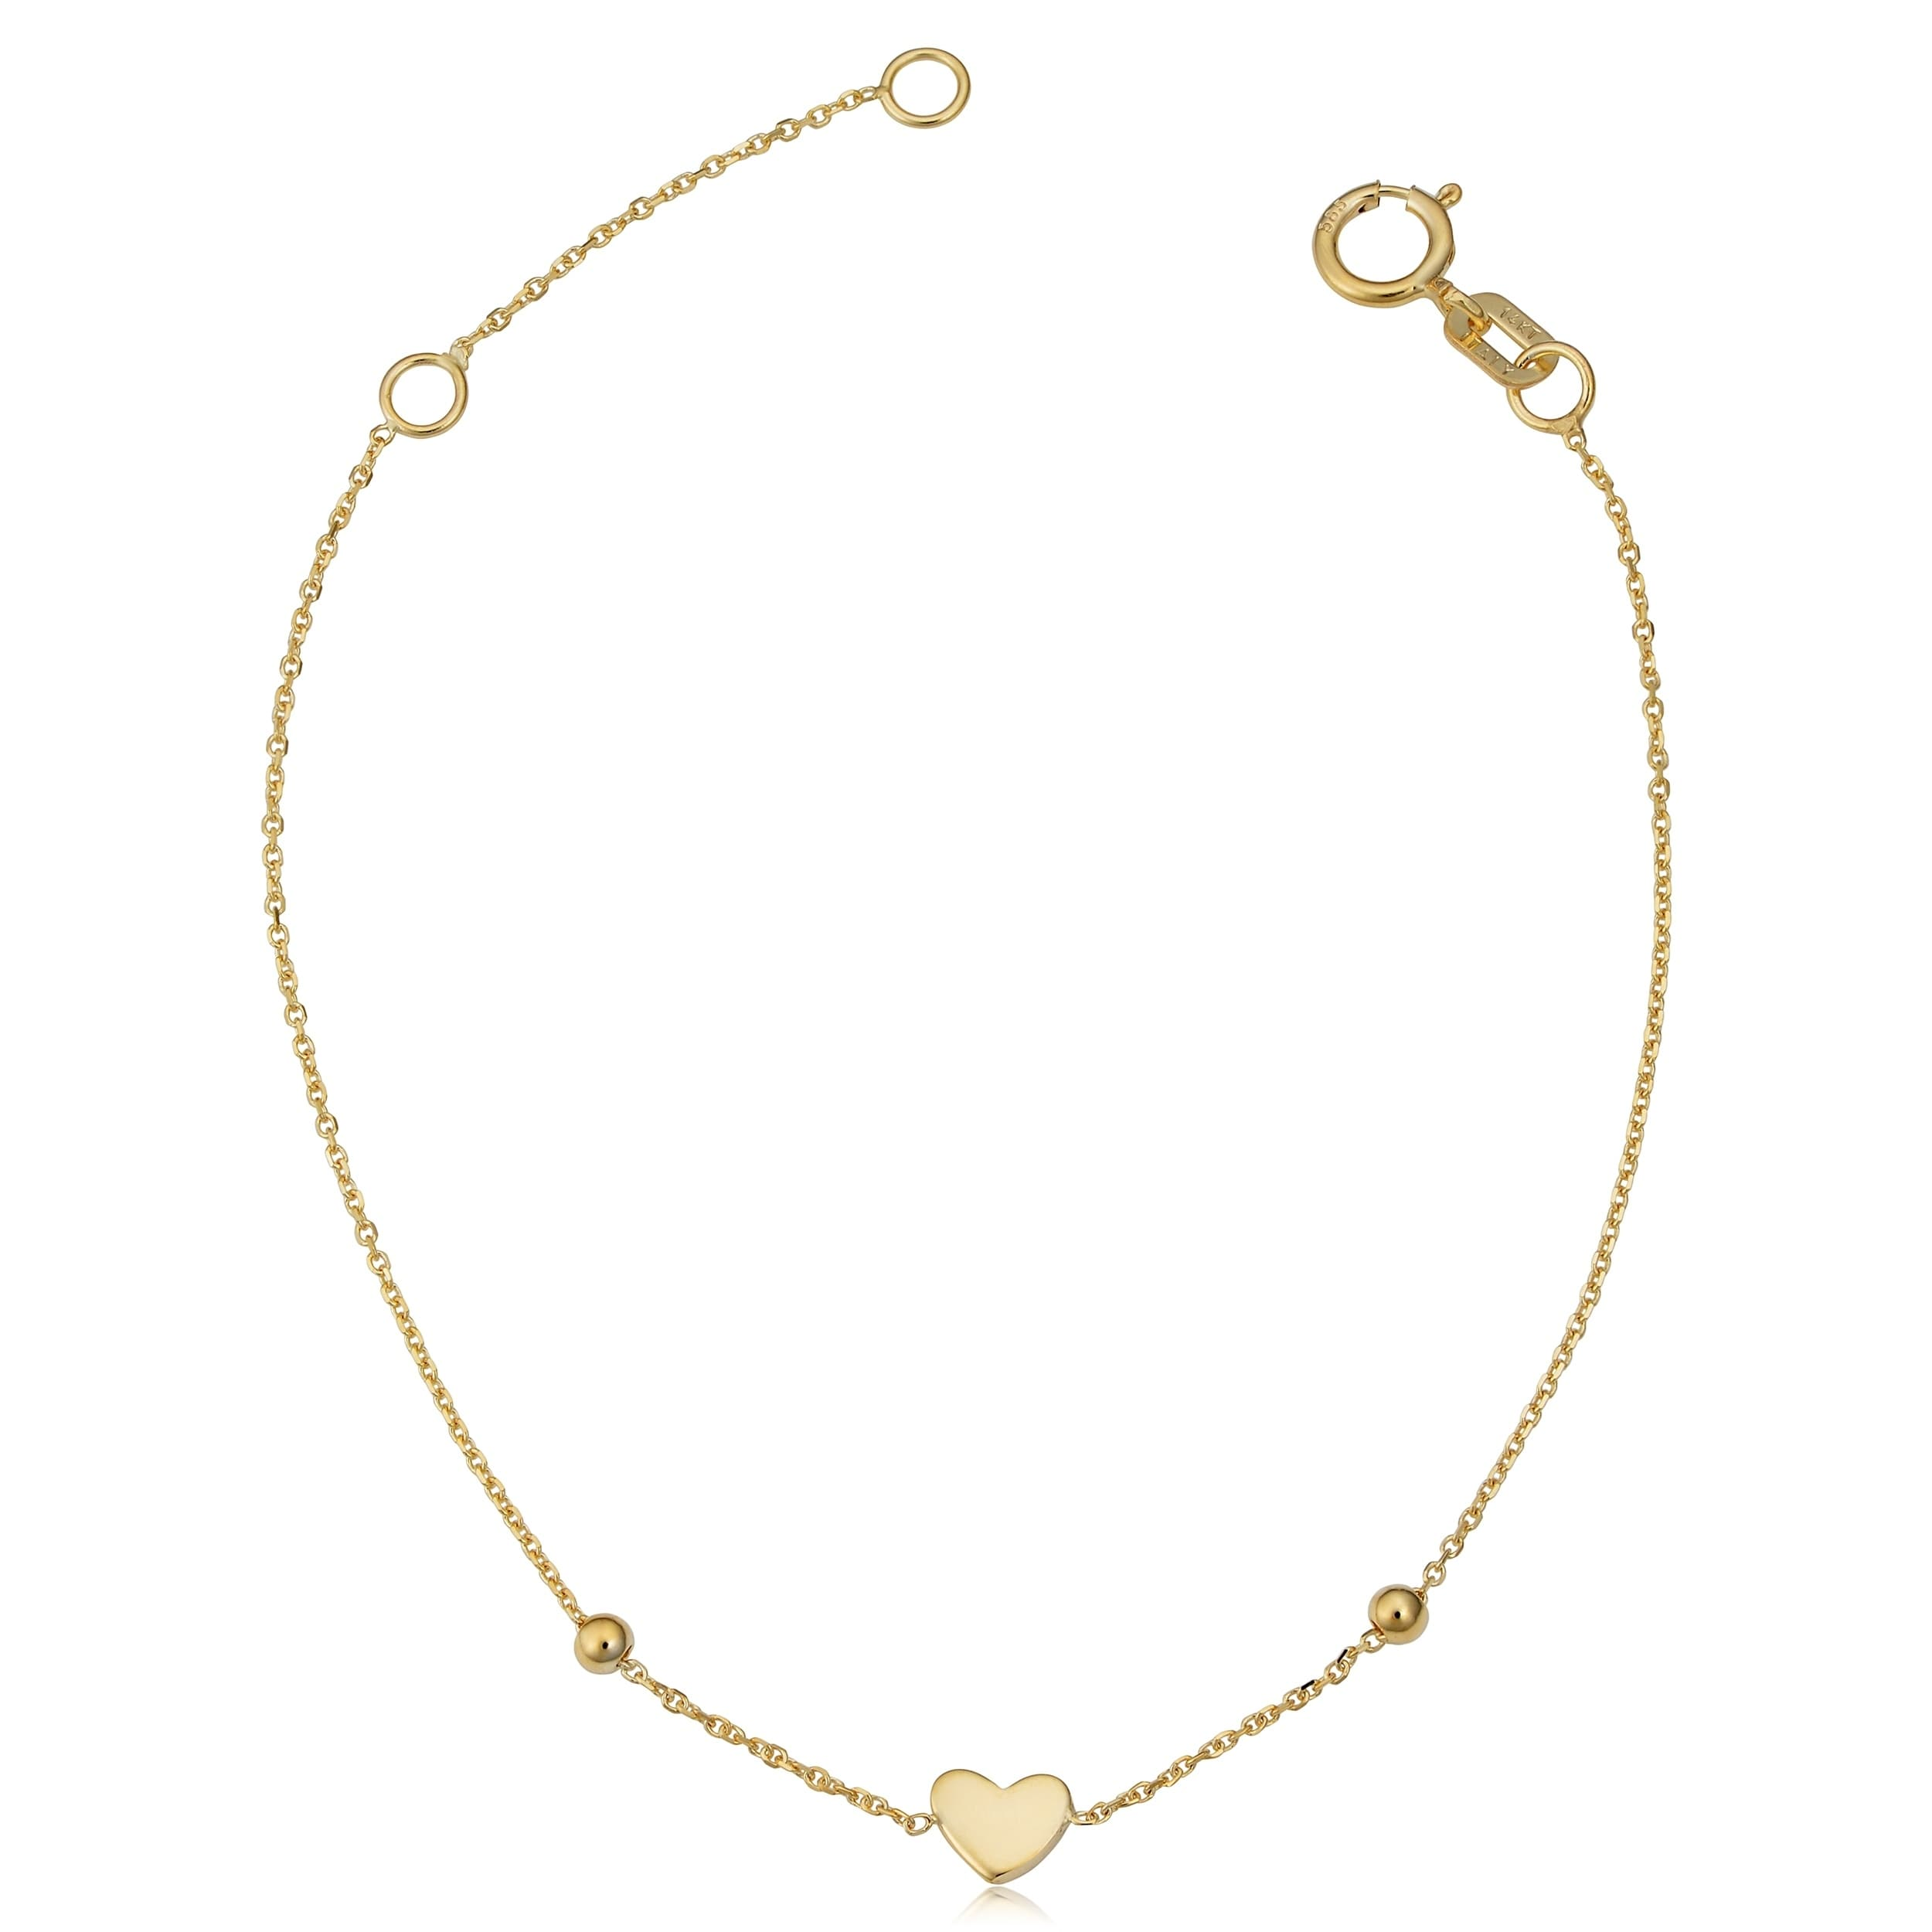 beec1c1275324 Fremada Italian 14k yellow gold heart and bead children s bracelet (fits  5.5 or 6.5 inches)